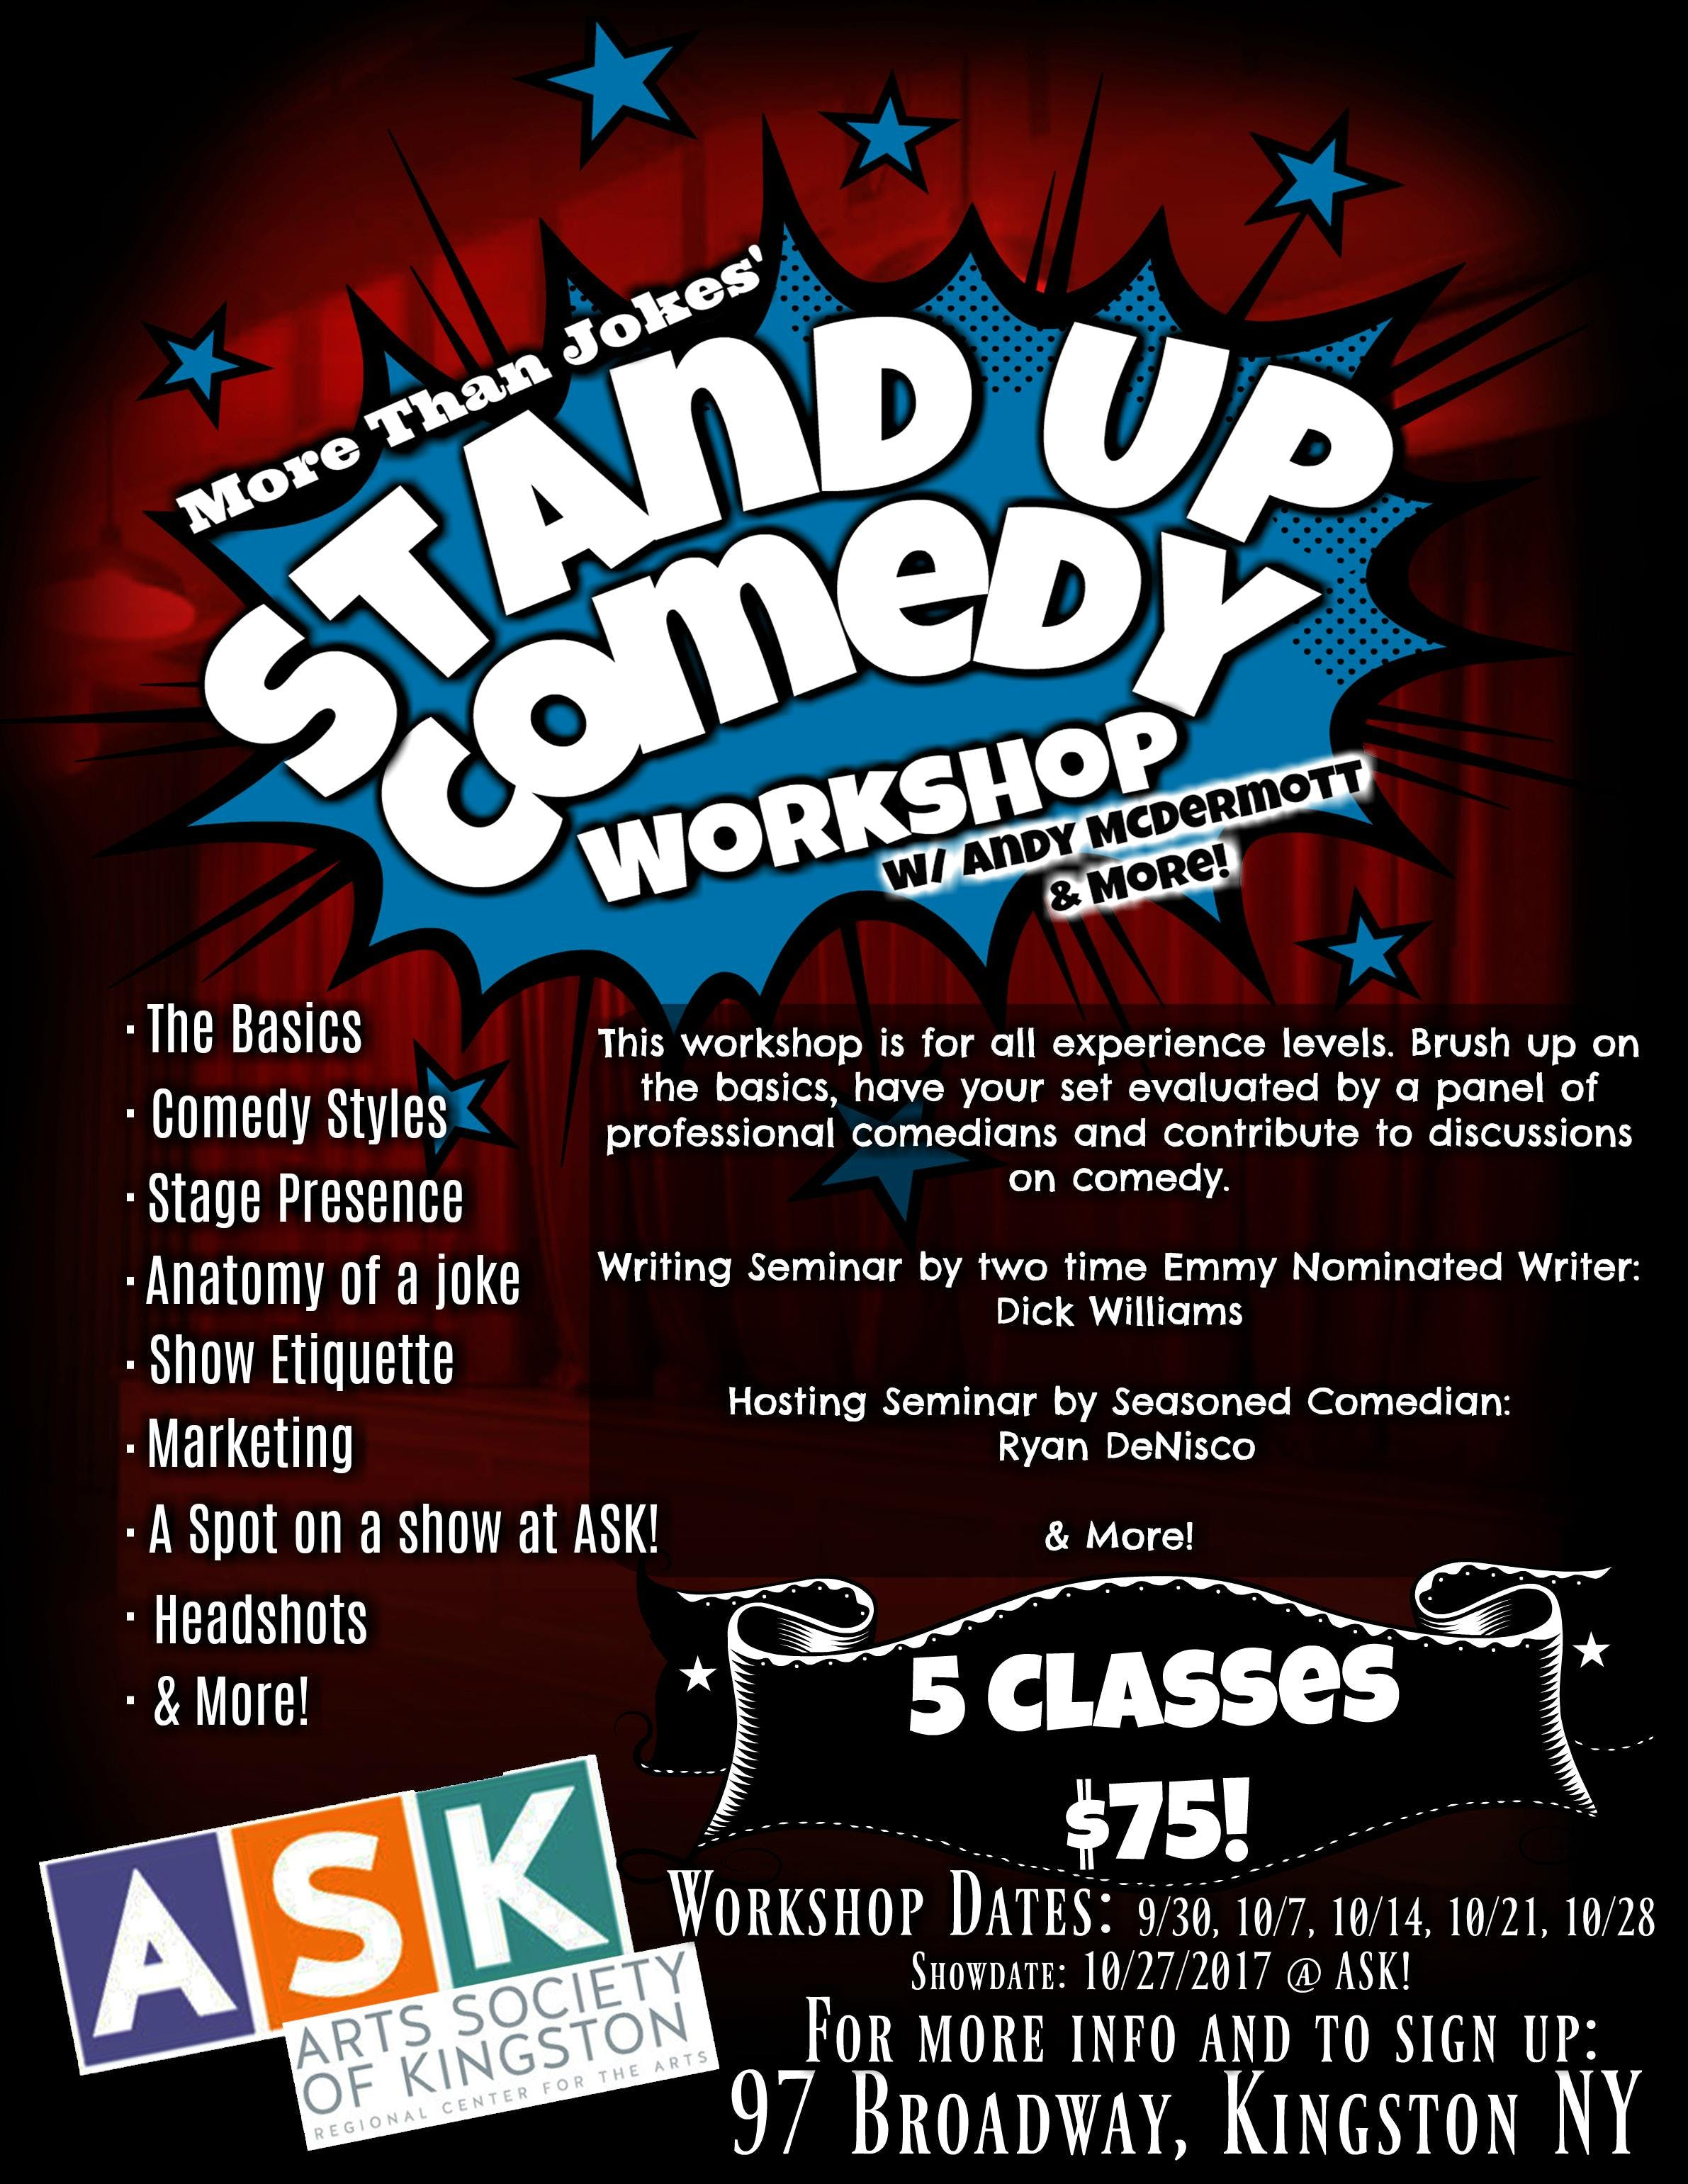 MTJs Stand Up Comedy Workshop! at Arts Society of Kingston, Kingston